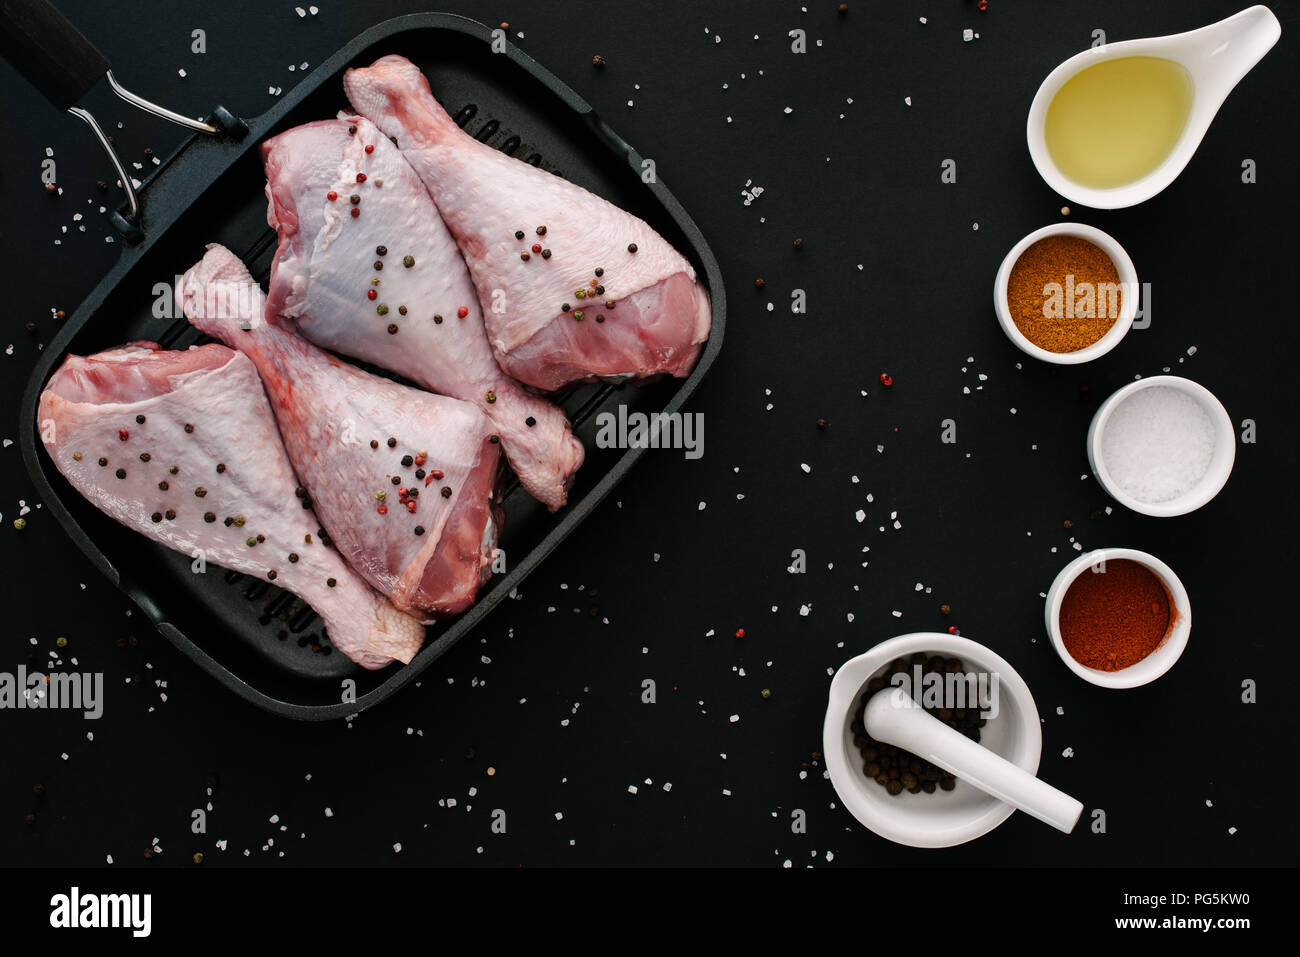 flat lay with turkey legs on grill pan with pepper corns, salt, oil and spices on black table - Stock Image